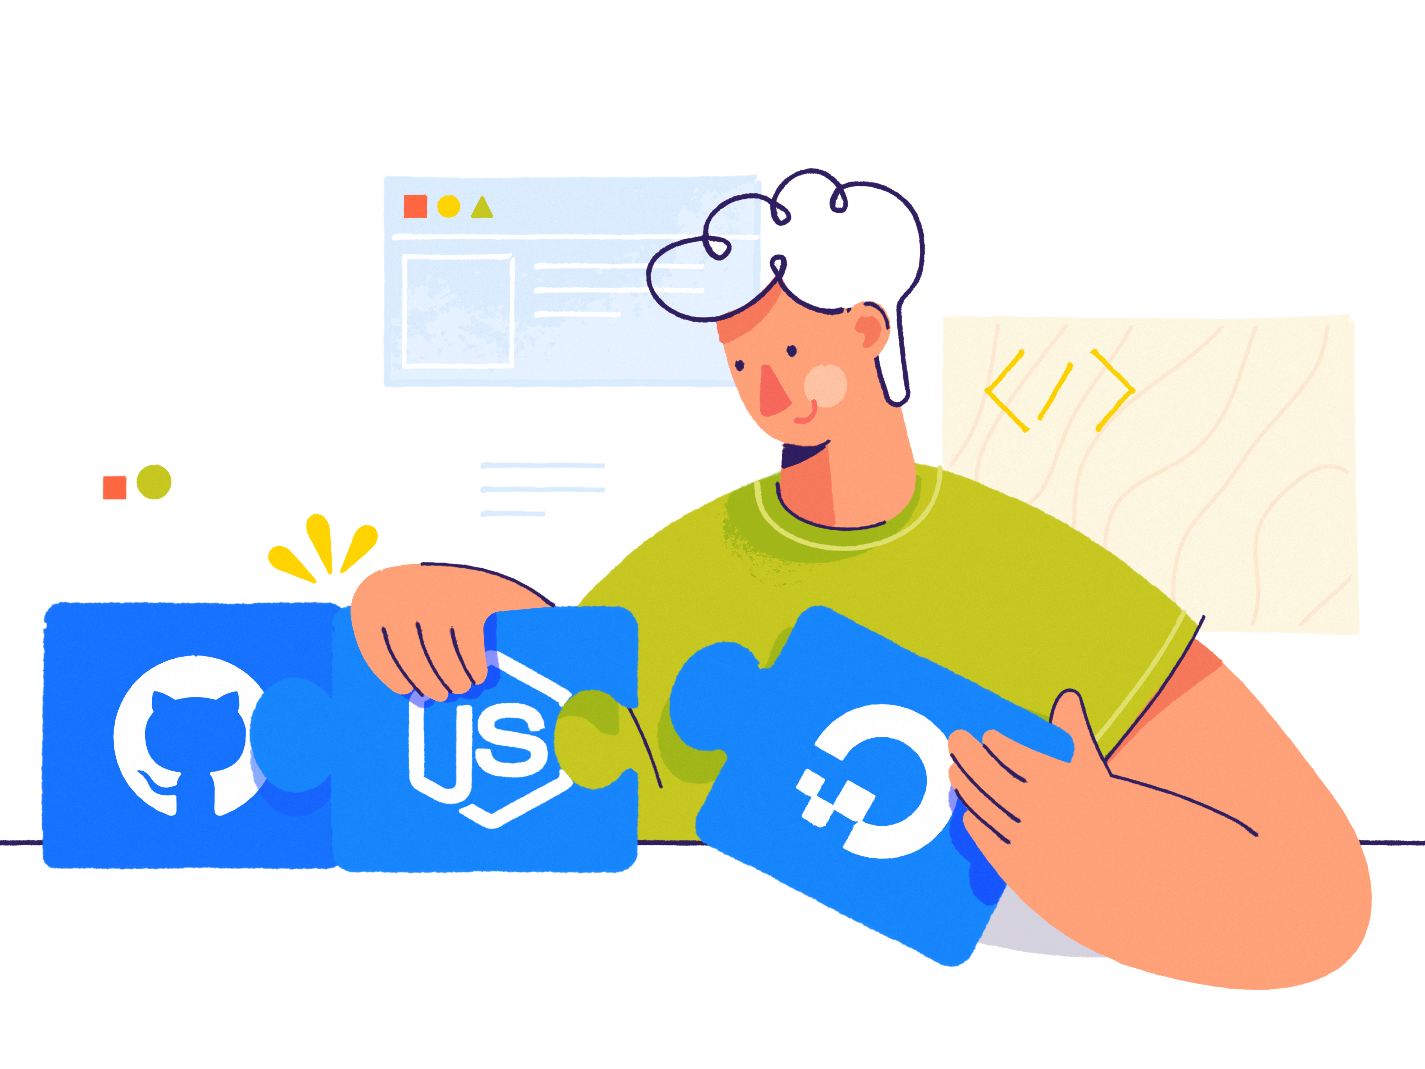 Continuous Delivery git developer pattern webpage man affinity designer clean simple character illustration vector